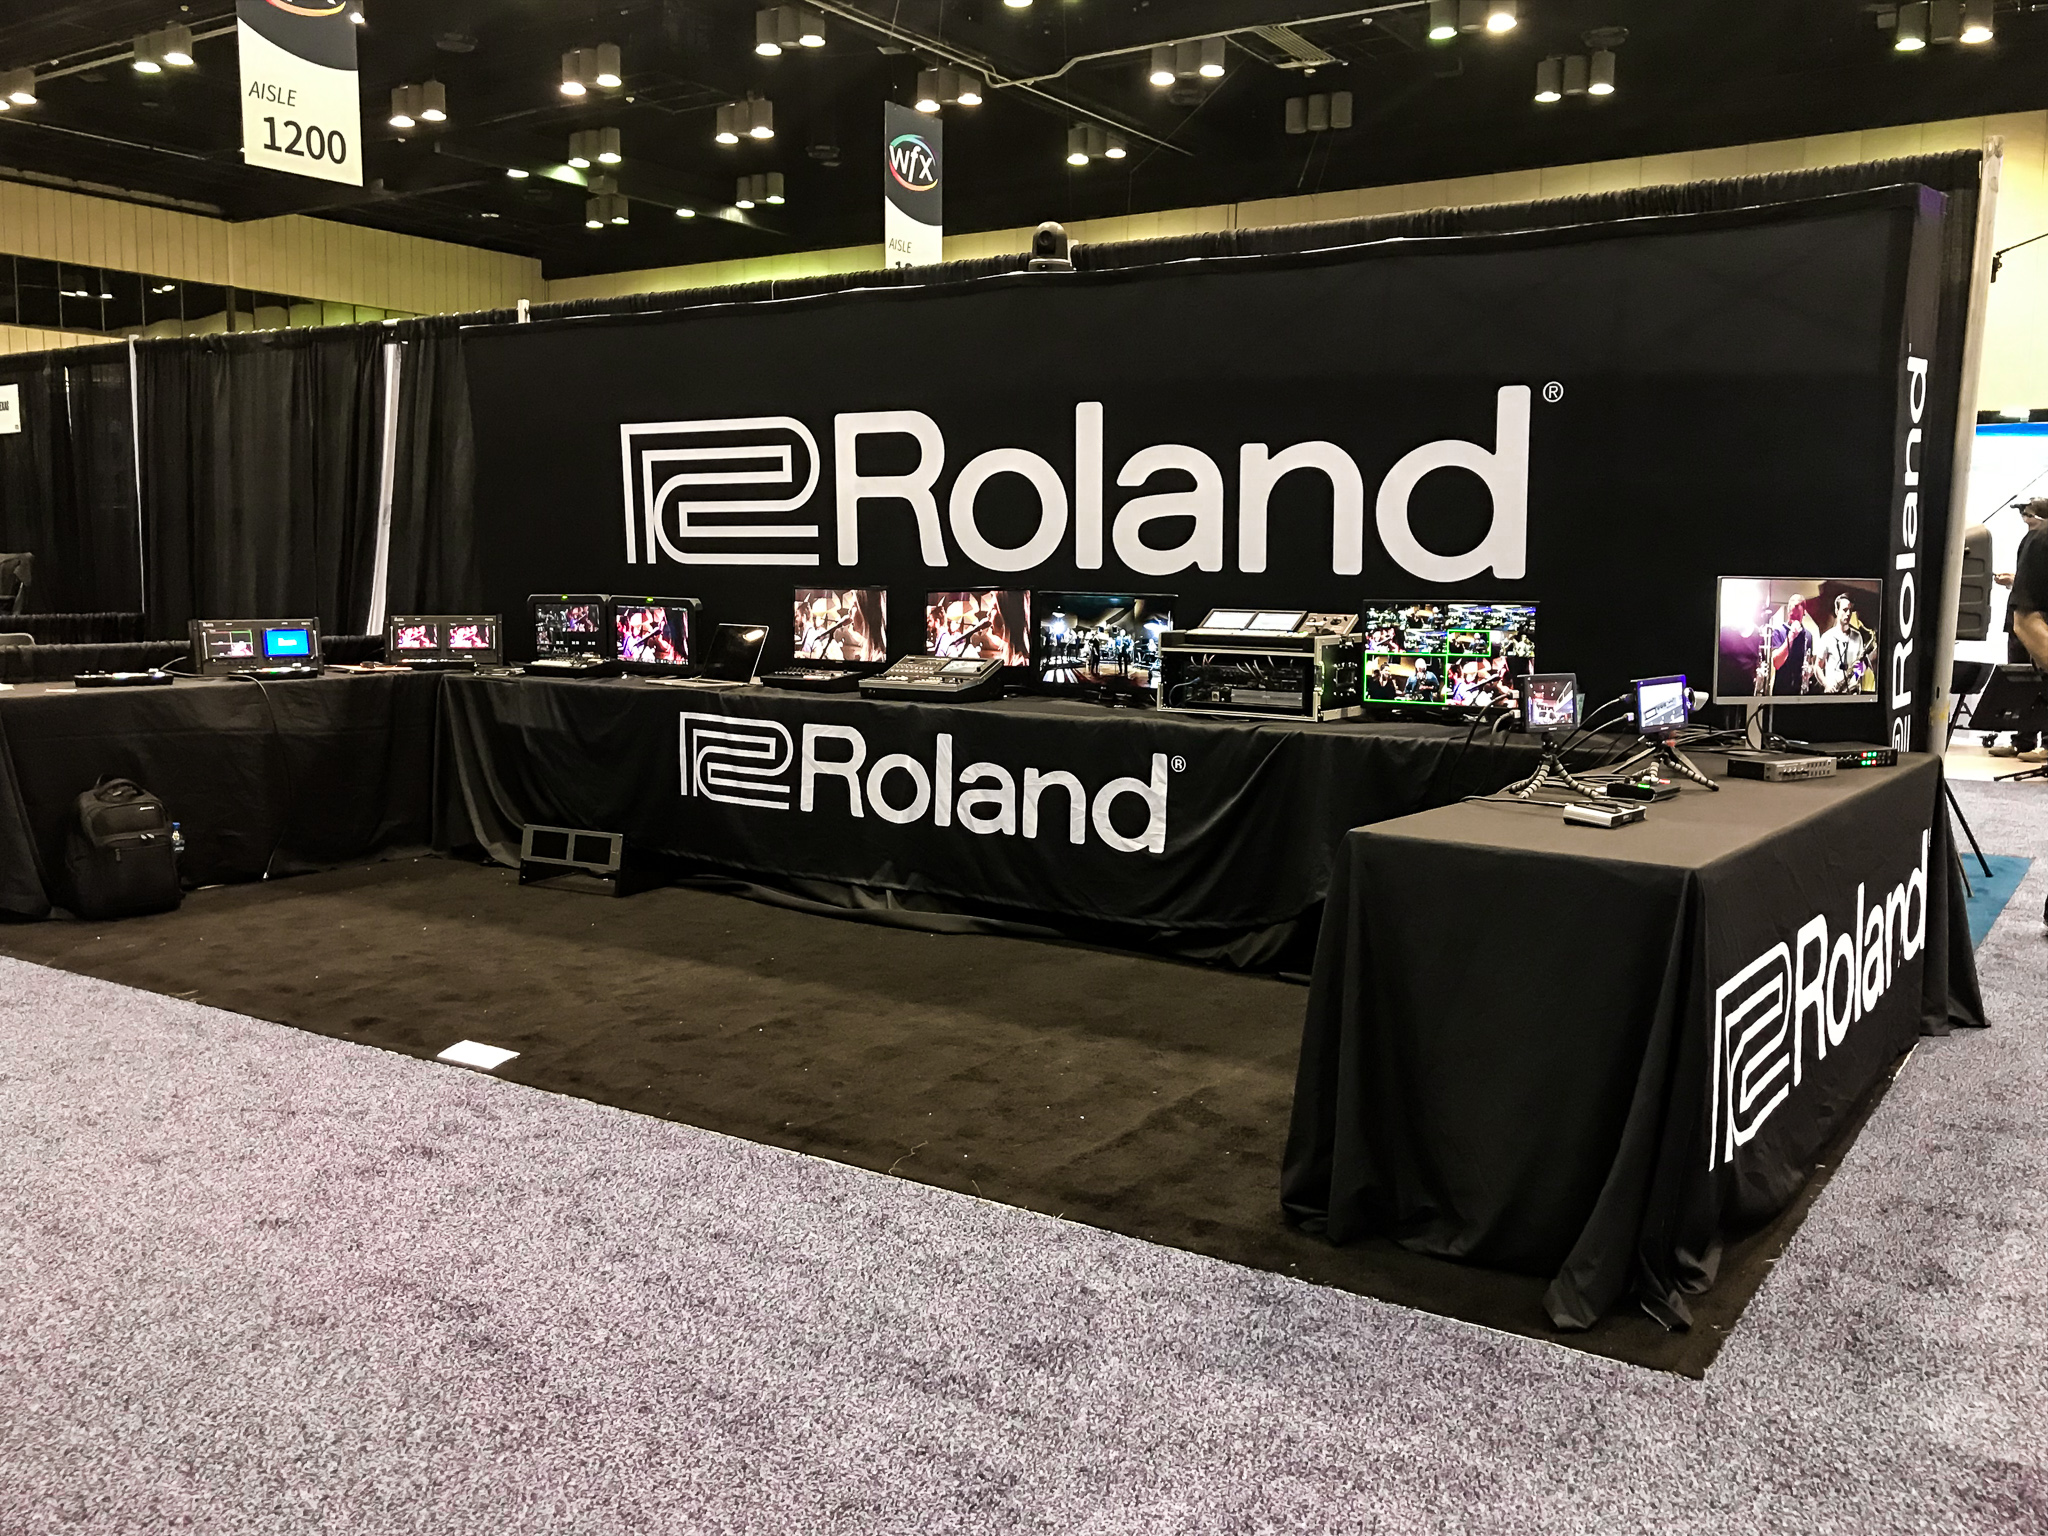 Roland is a company that sells electrical instruments and synthesizers to enhance a worship service. They displayed their different products for onlookers to try out.